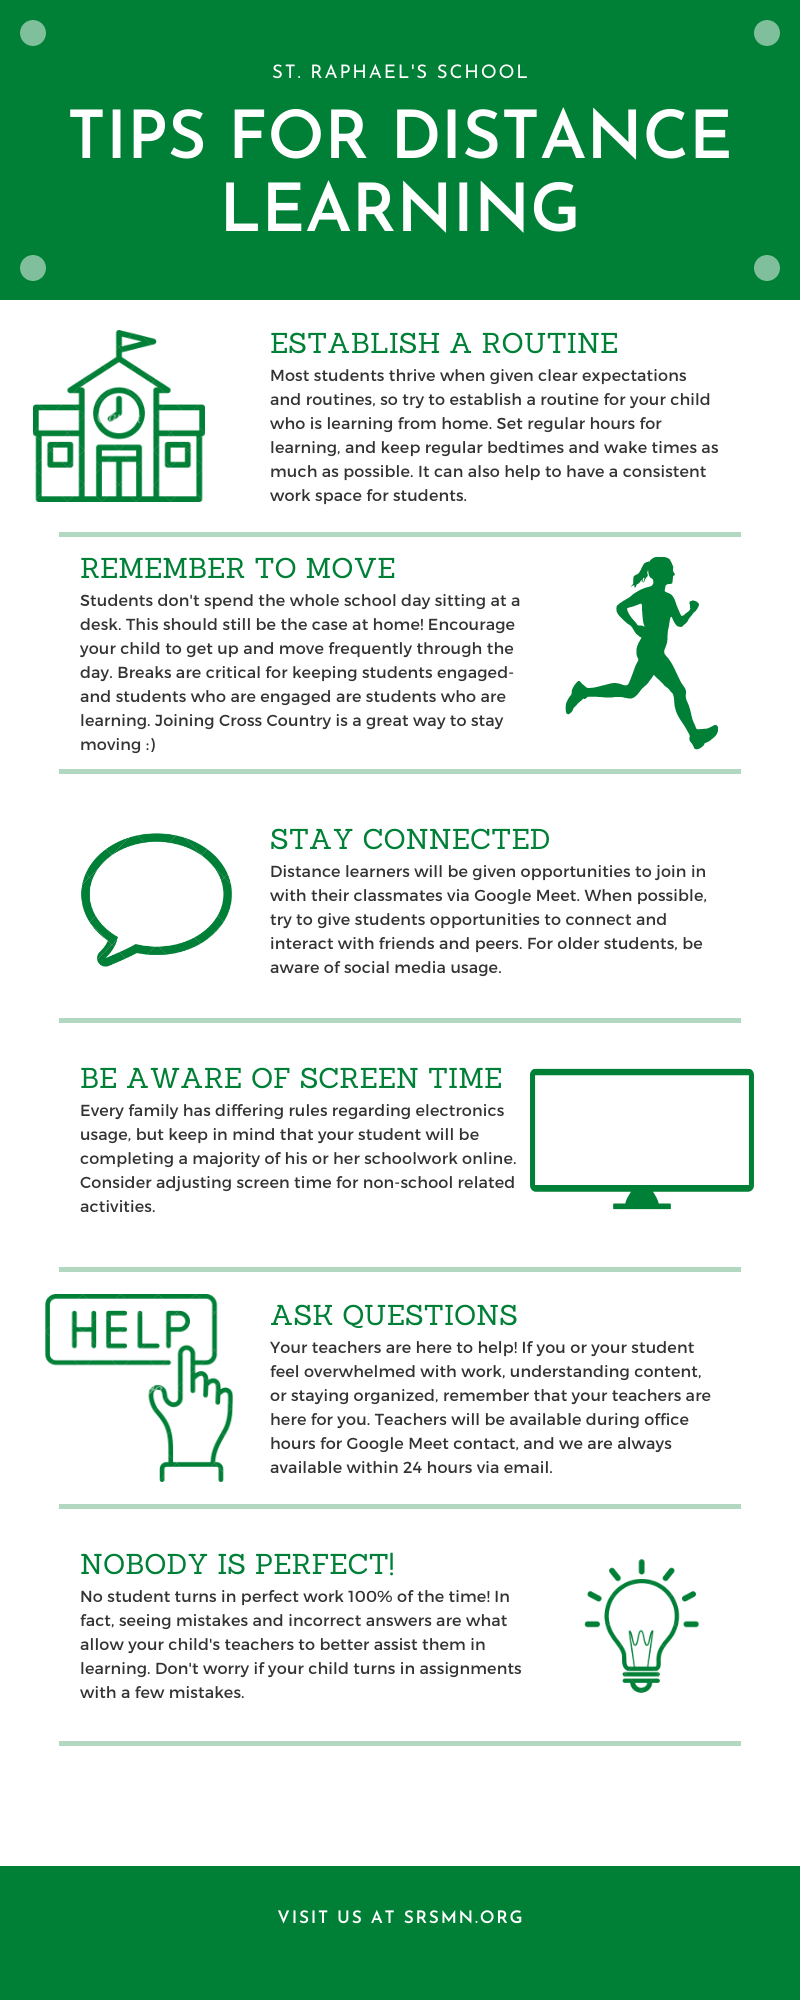 Tips for distance learning infographic